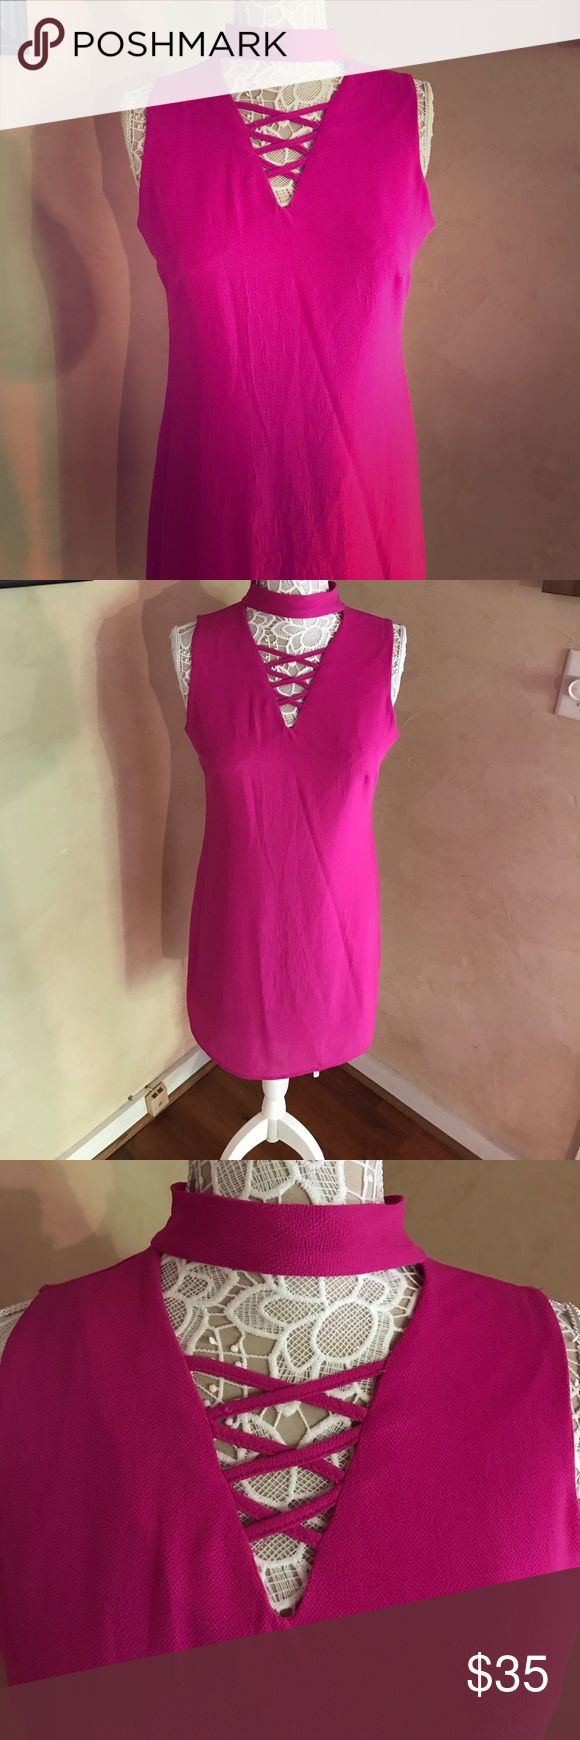 Women's size medium boutique dress Women's size medium worn once zip up bright purple dress. Zips up the back. Like. Tans new condition julianas boutique Dresses Midi